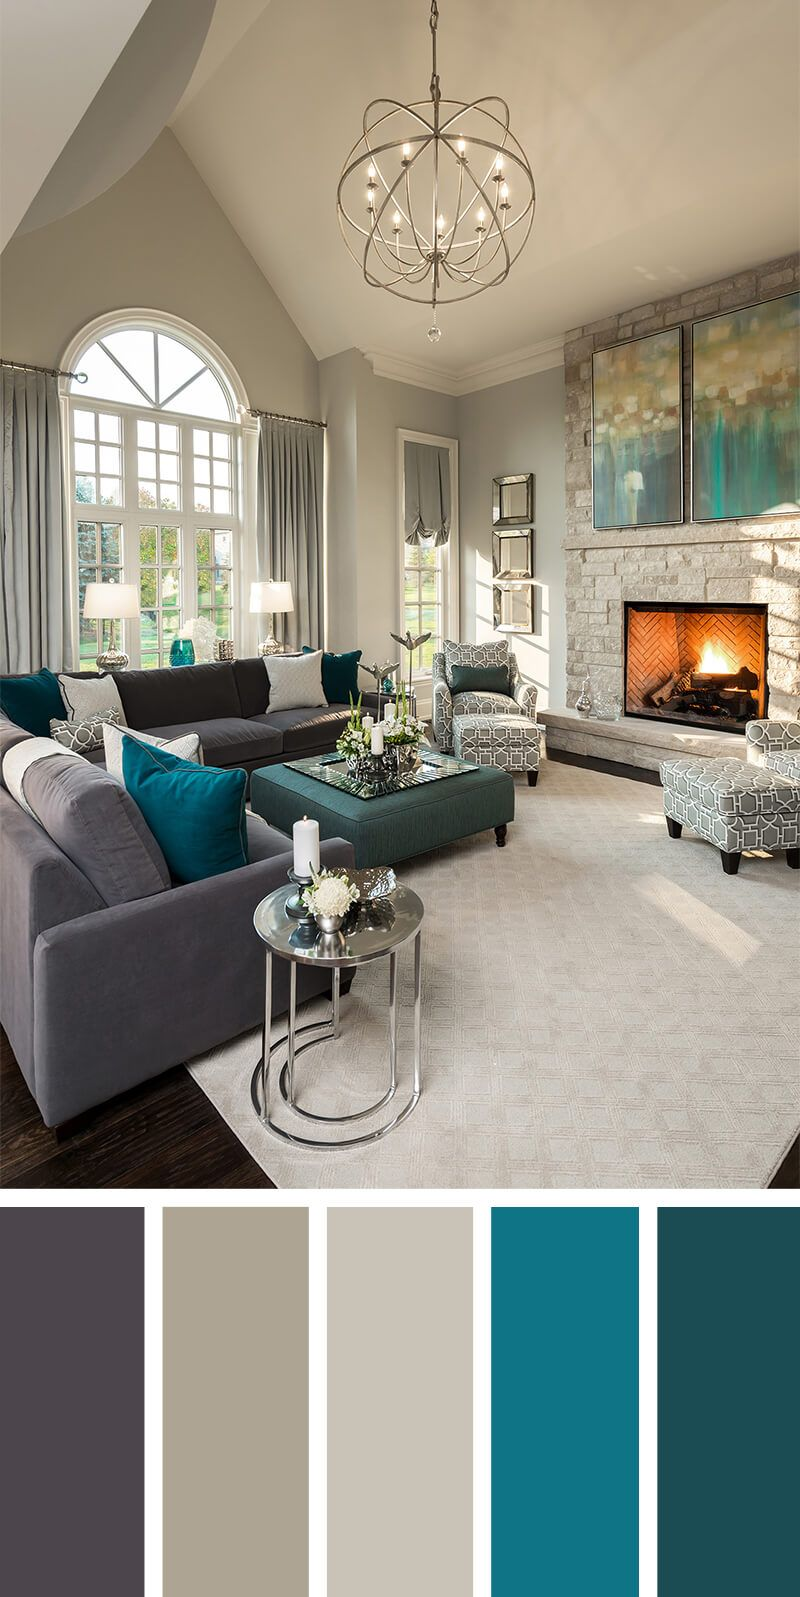 7 Living Room Color Schemes that will Make Your Space Look     Sofa caf       sillones real  pared gris claro  acentos blancos plateados